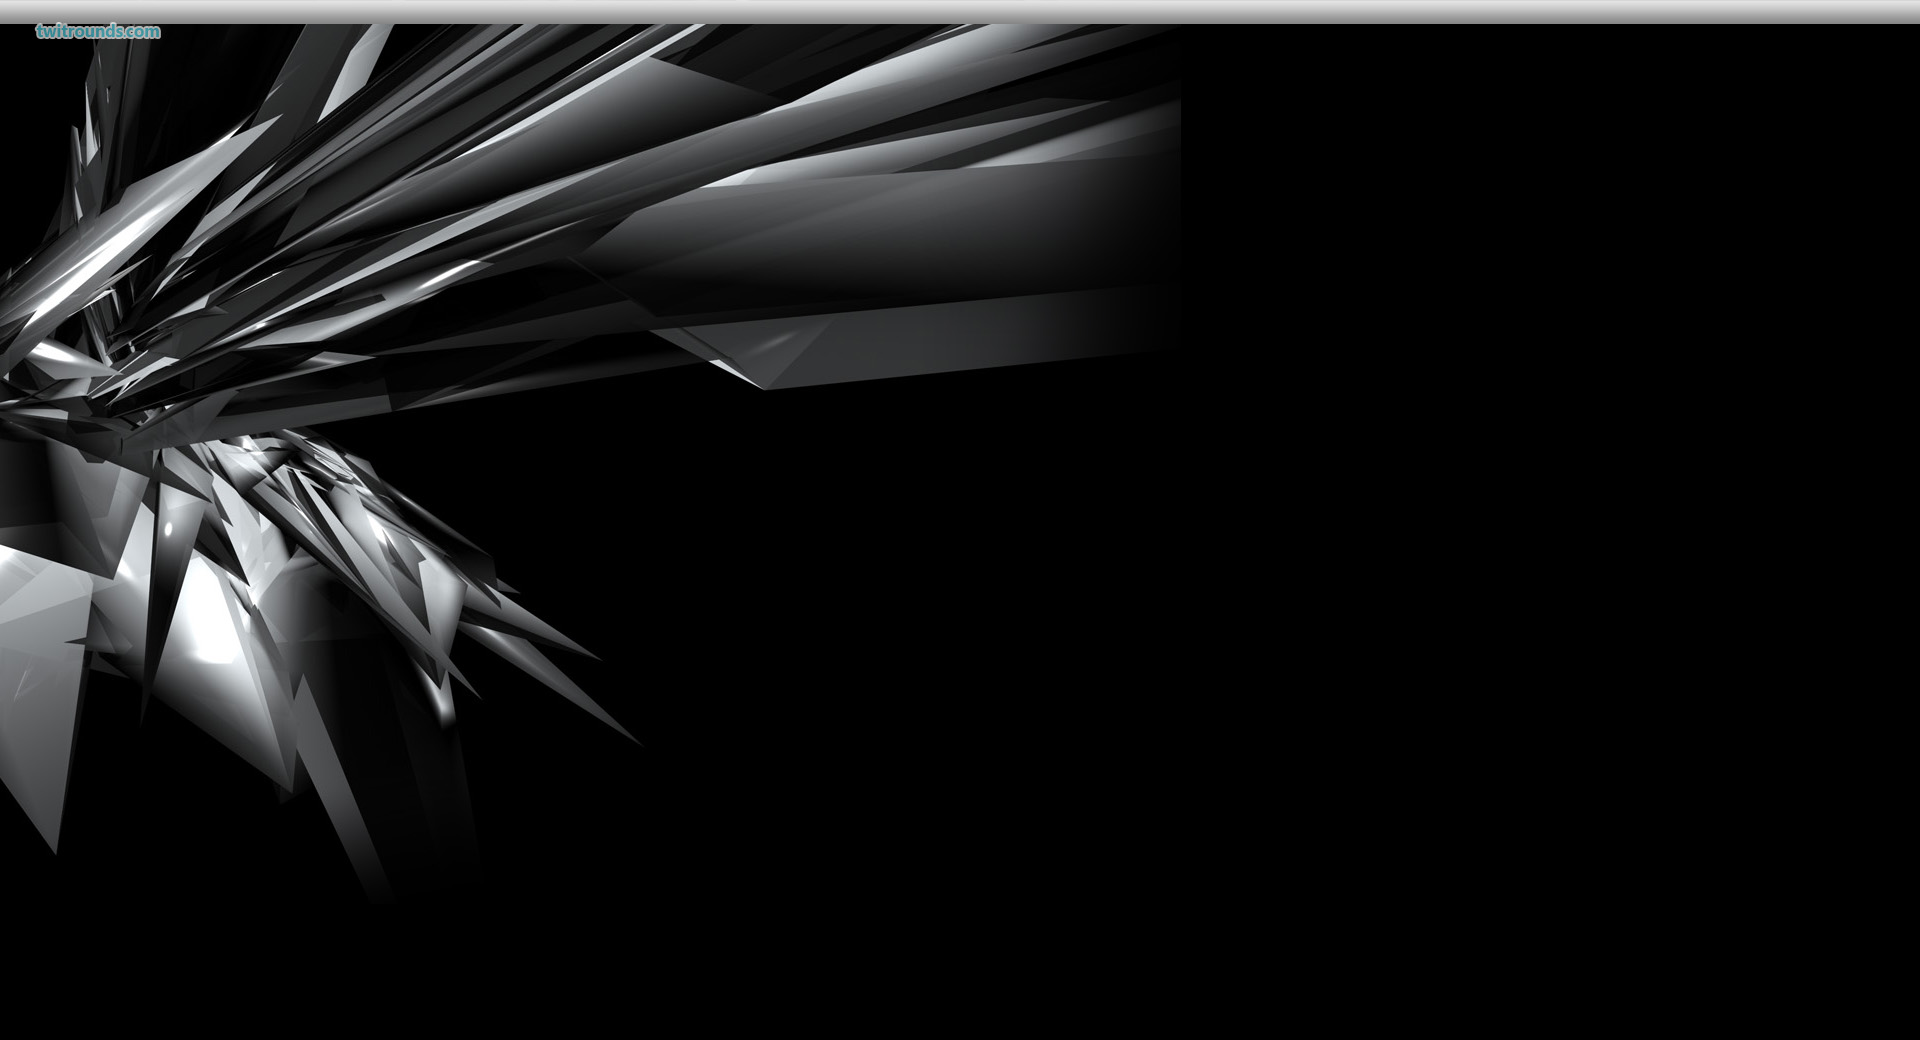 Cool Black Backgrounds Designs: Black And Silver Wallpaper Designs 8 Background